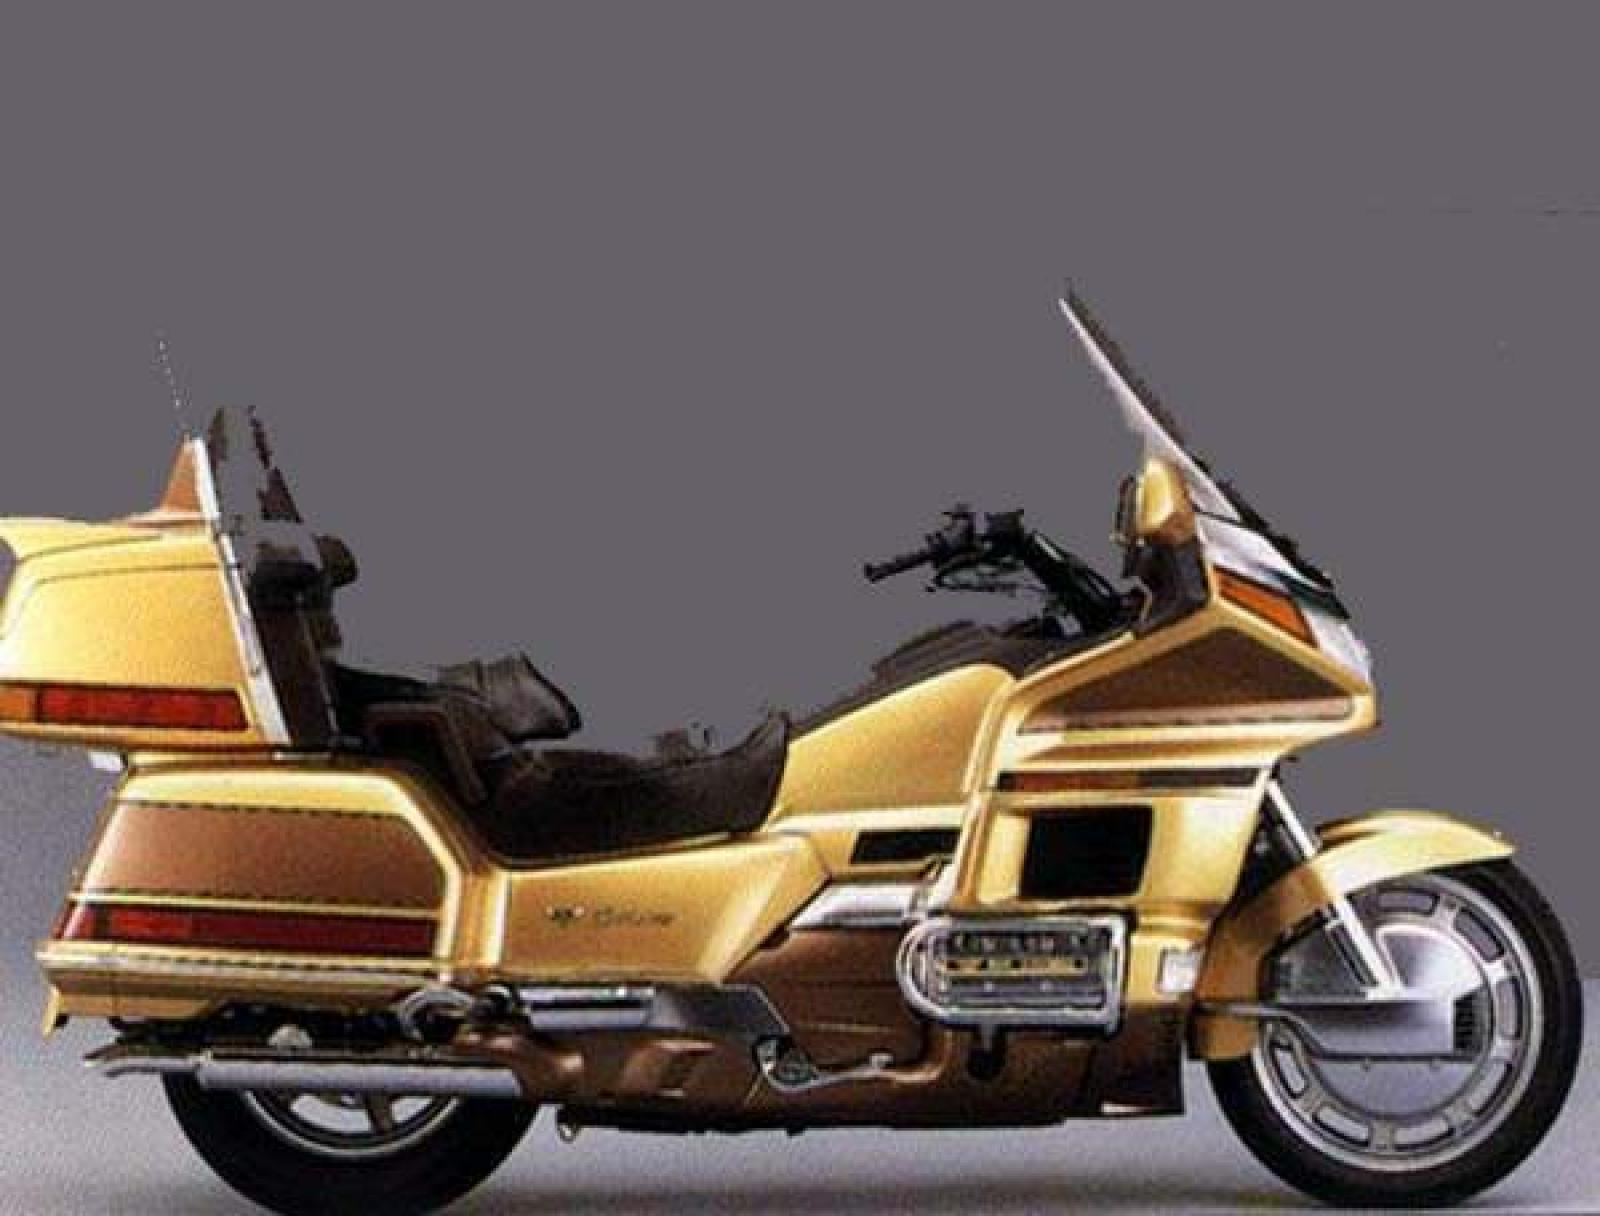 800 1024 1280 1600 origin Honda GL1500/6 Gold Wing ...